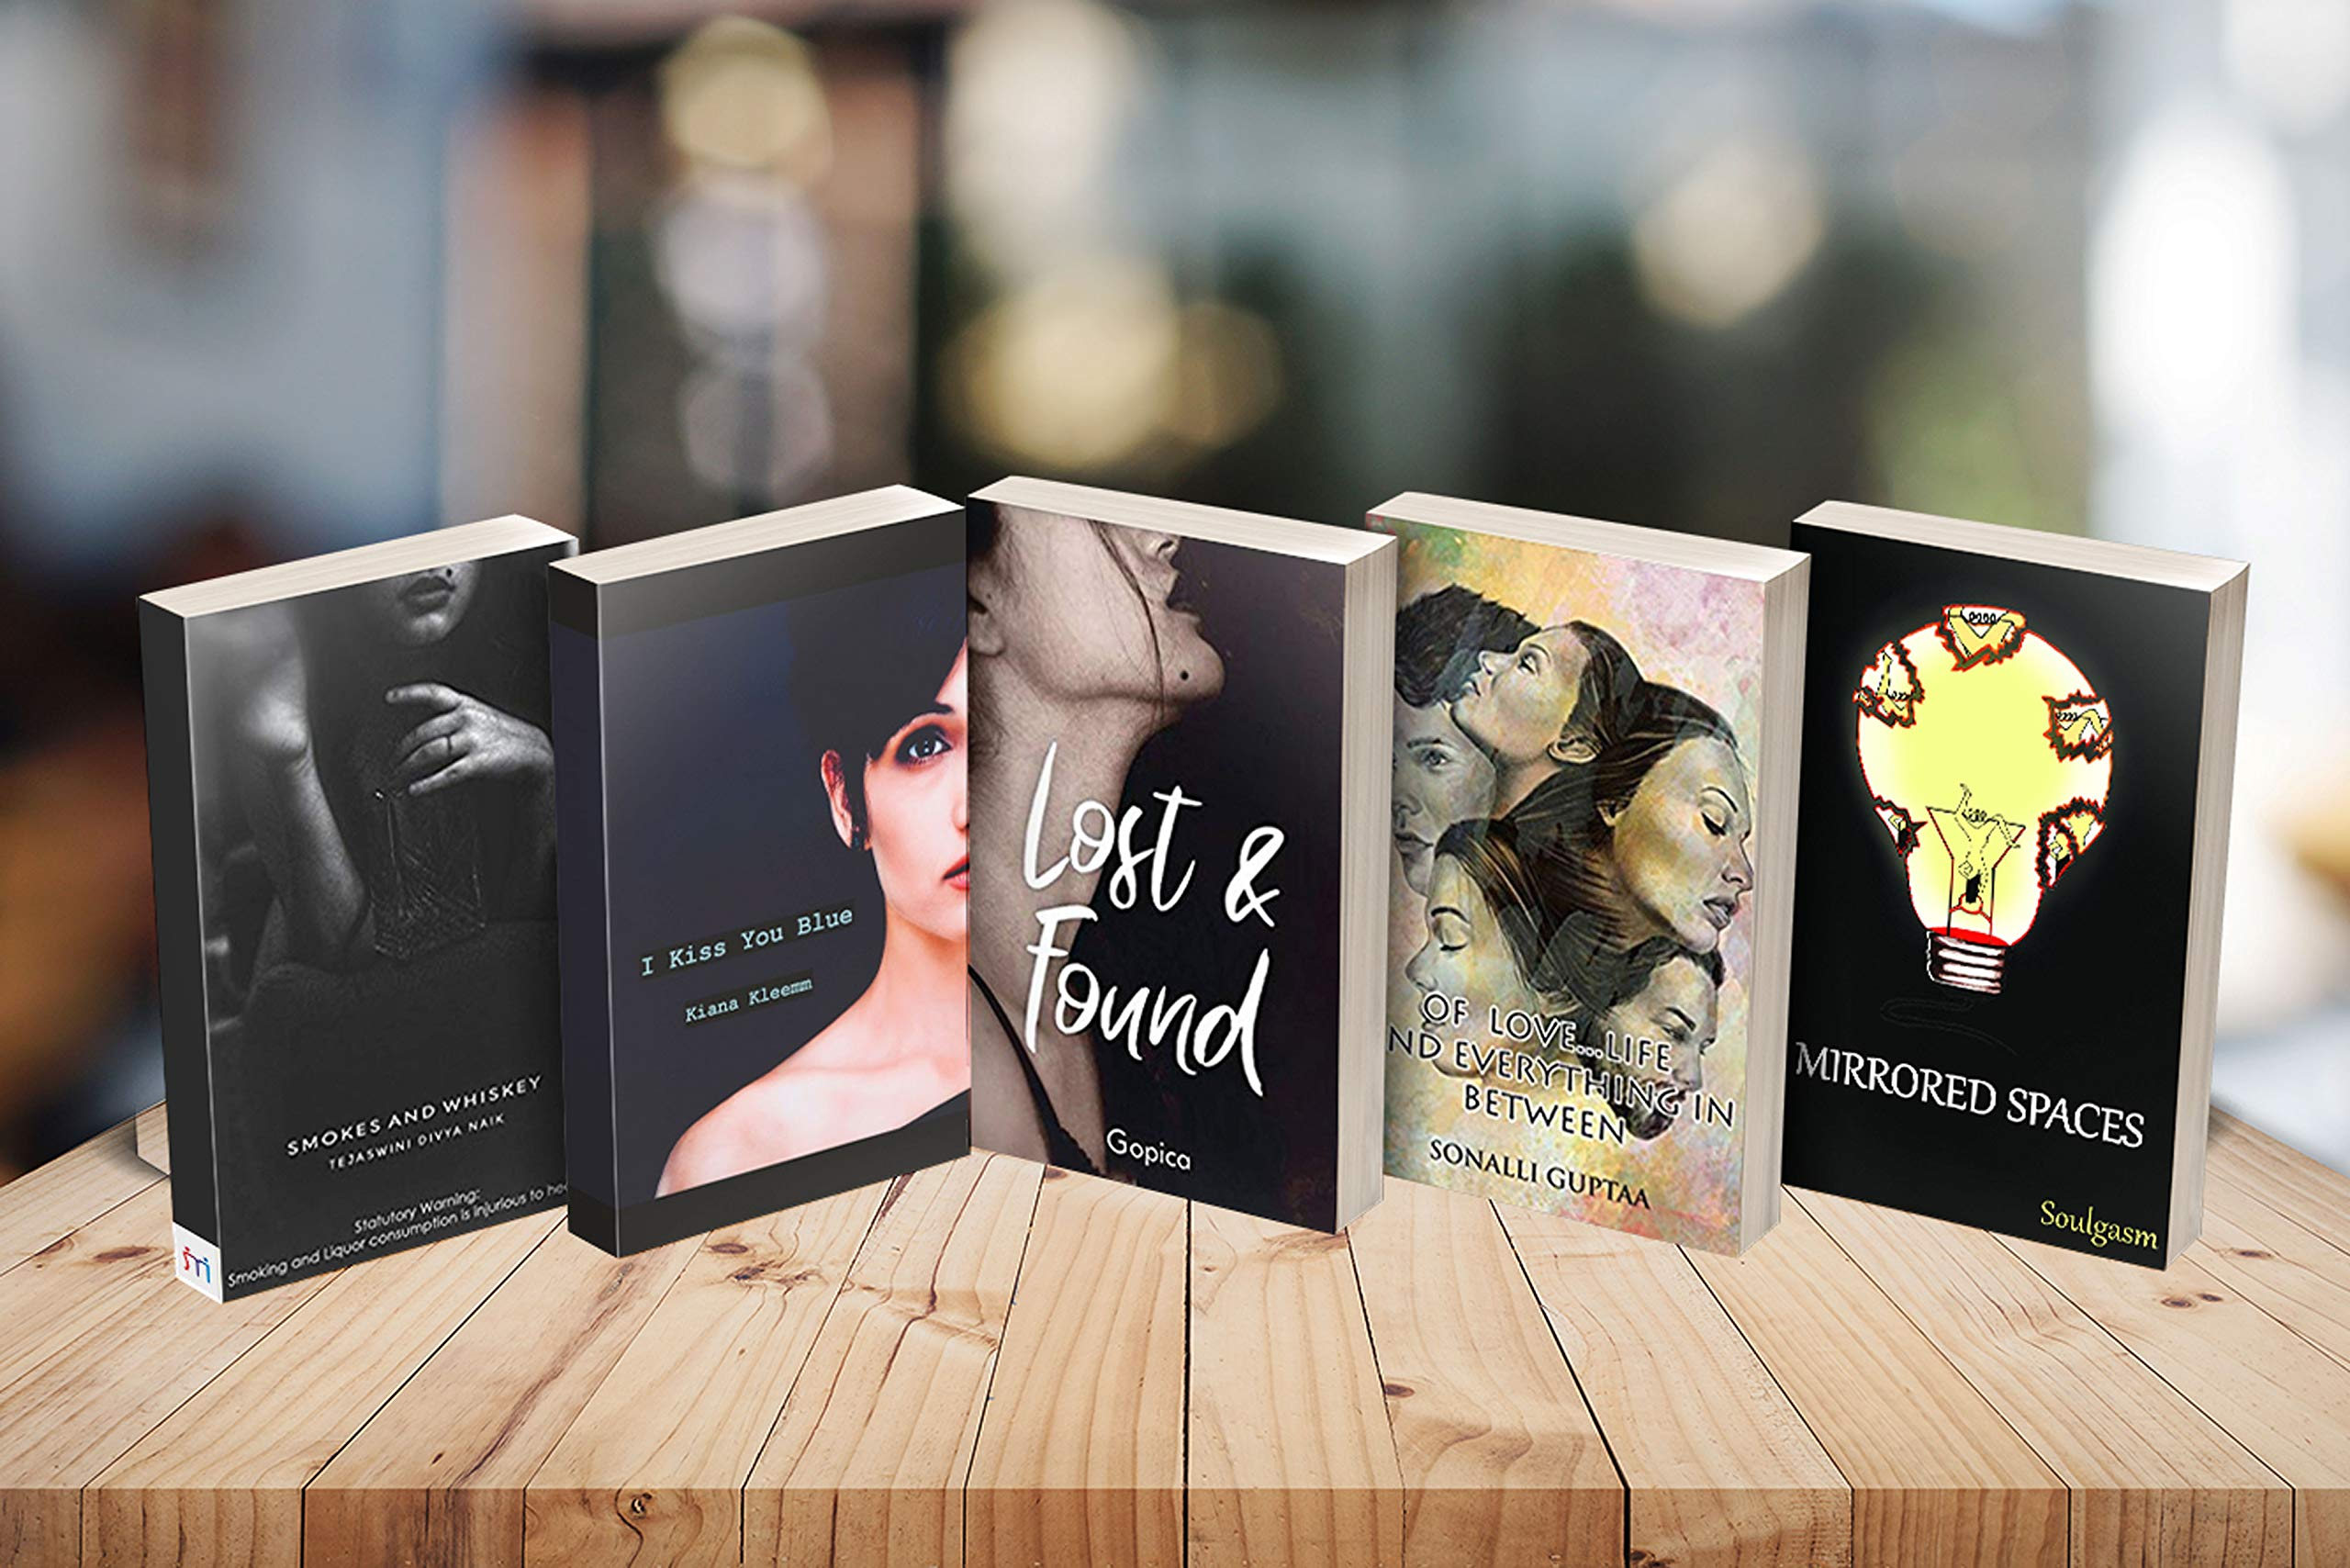 Combo of 5 Poetry Books reflecting on Love & Life